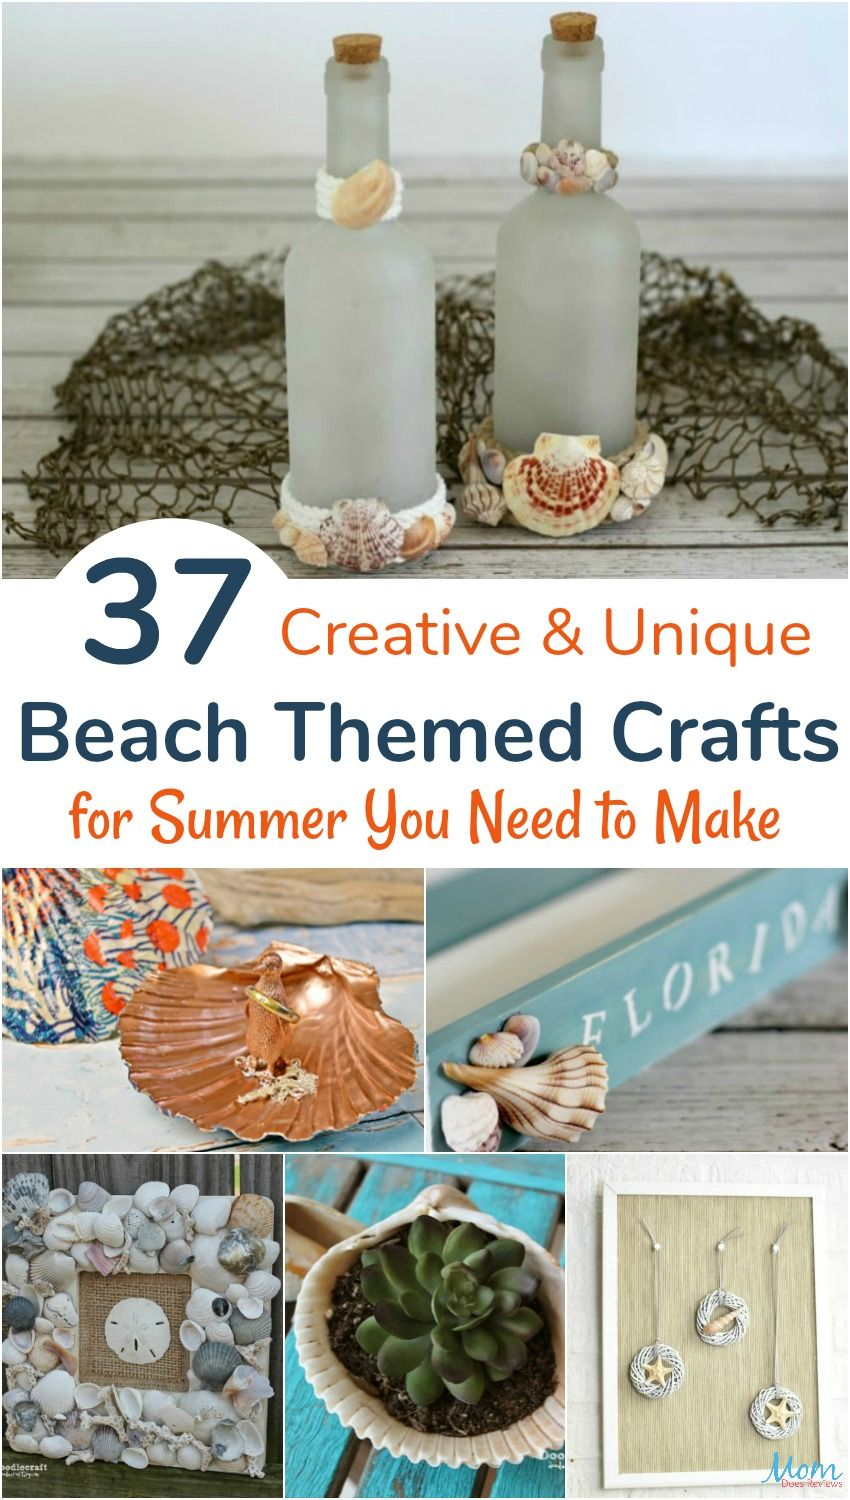 37 Ideas To Use All 4 Bahtroom Border Tile Types: 37 Creative & Unique Beach Themed Crafts For Summer You